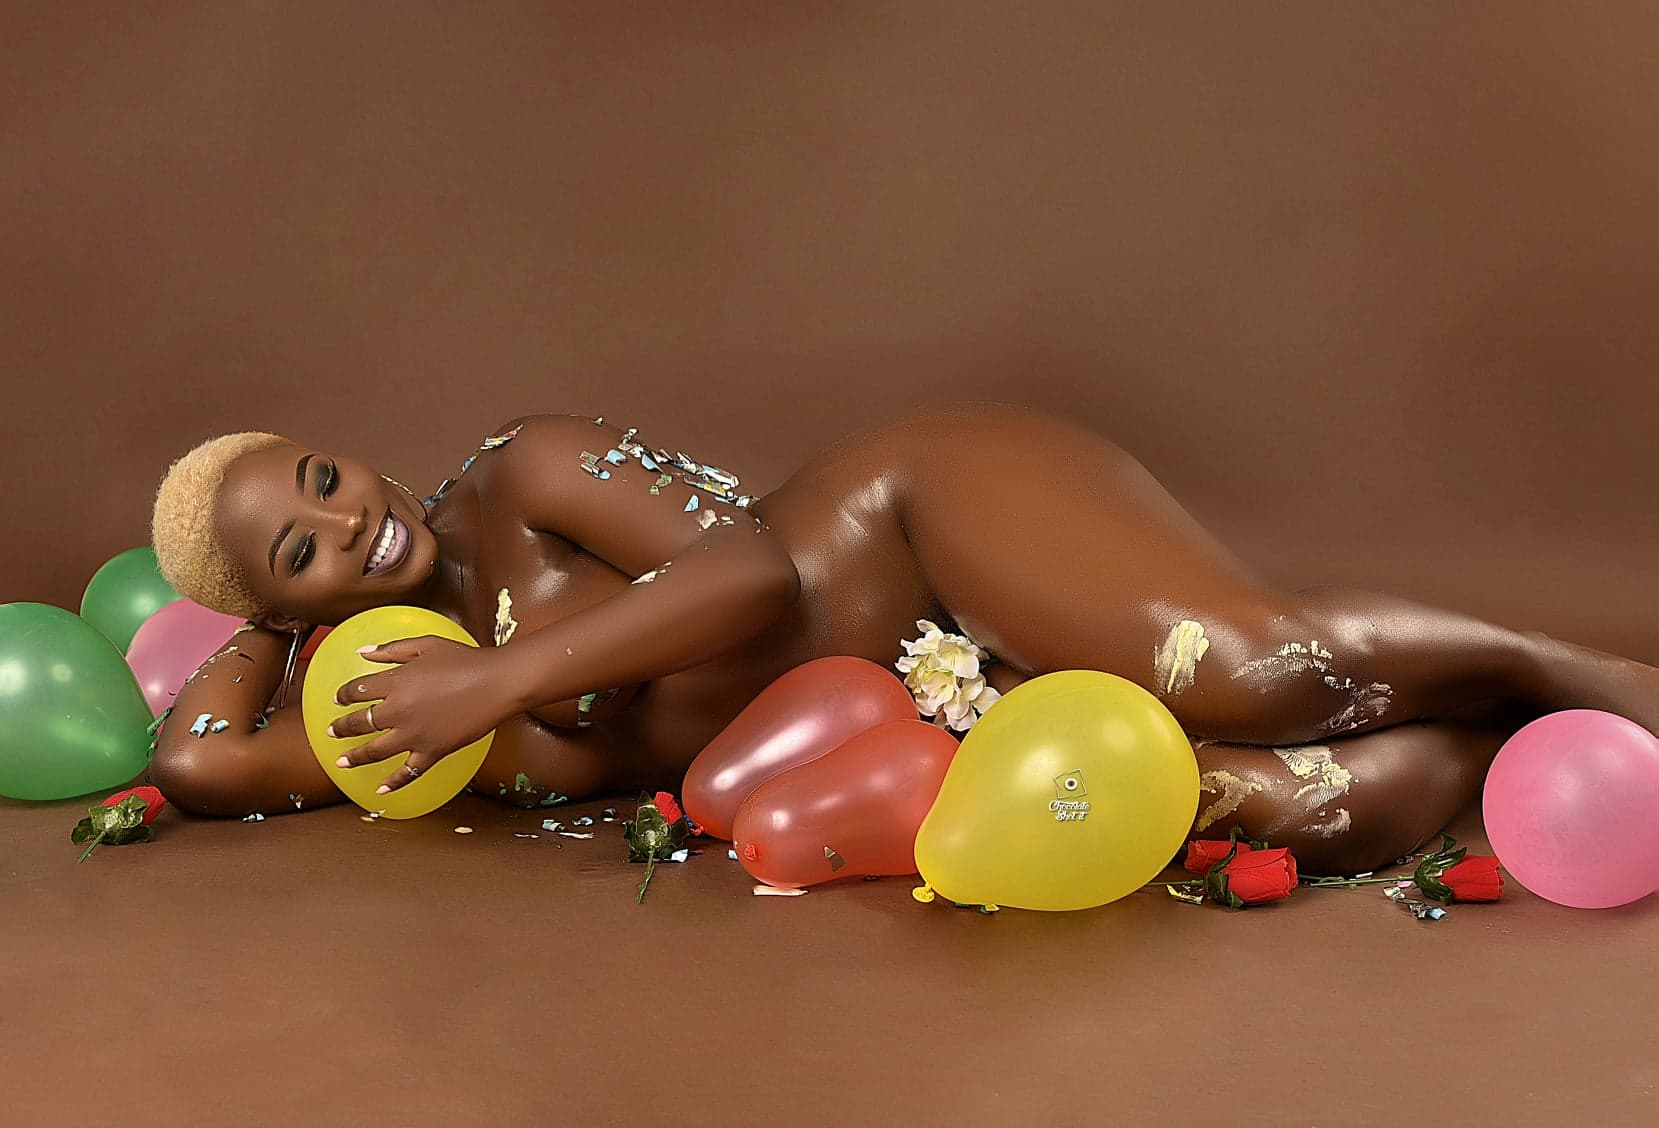 Tilly Hipsy's raunchy birthday photos are a sight to behold